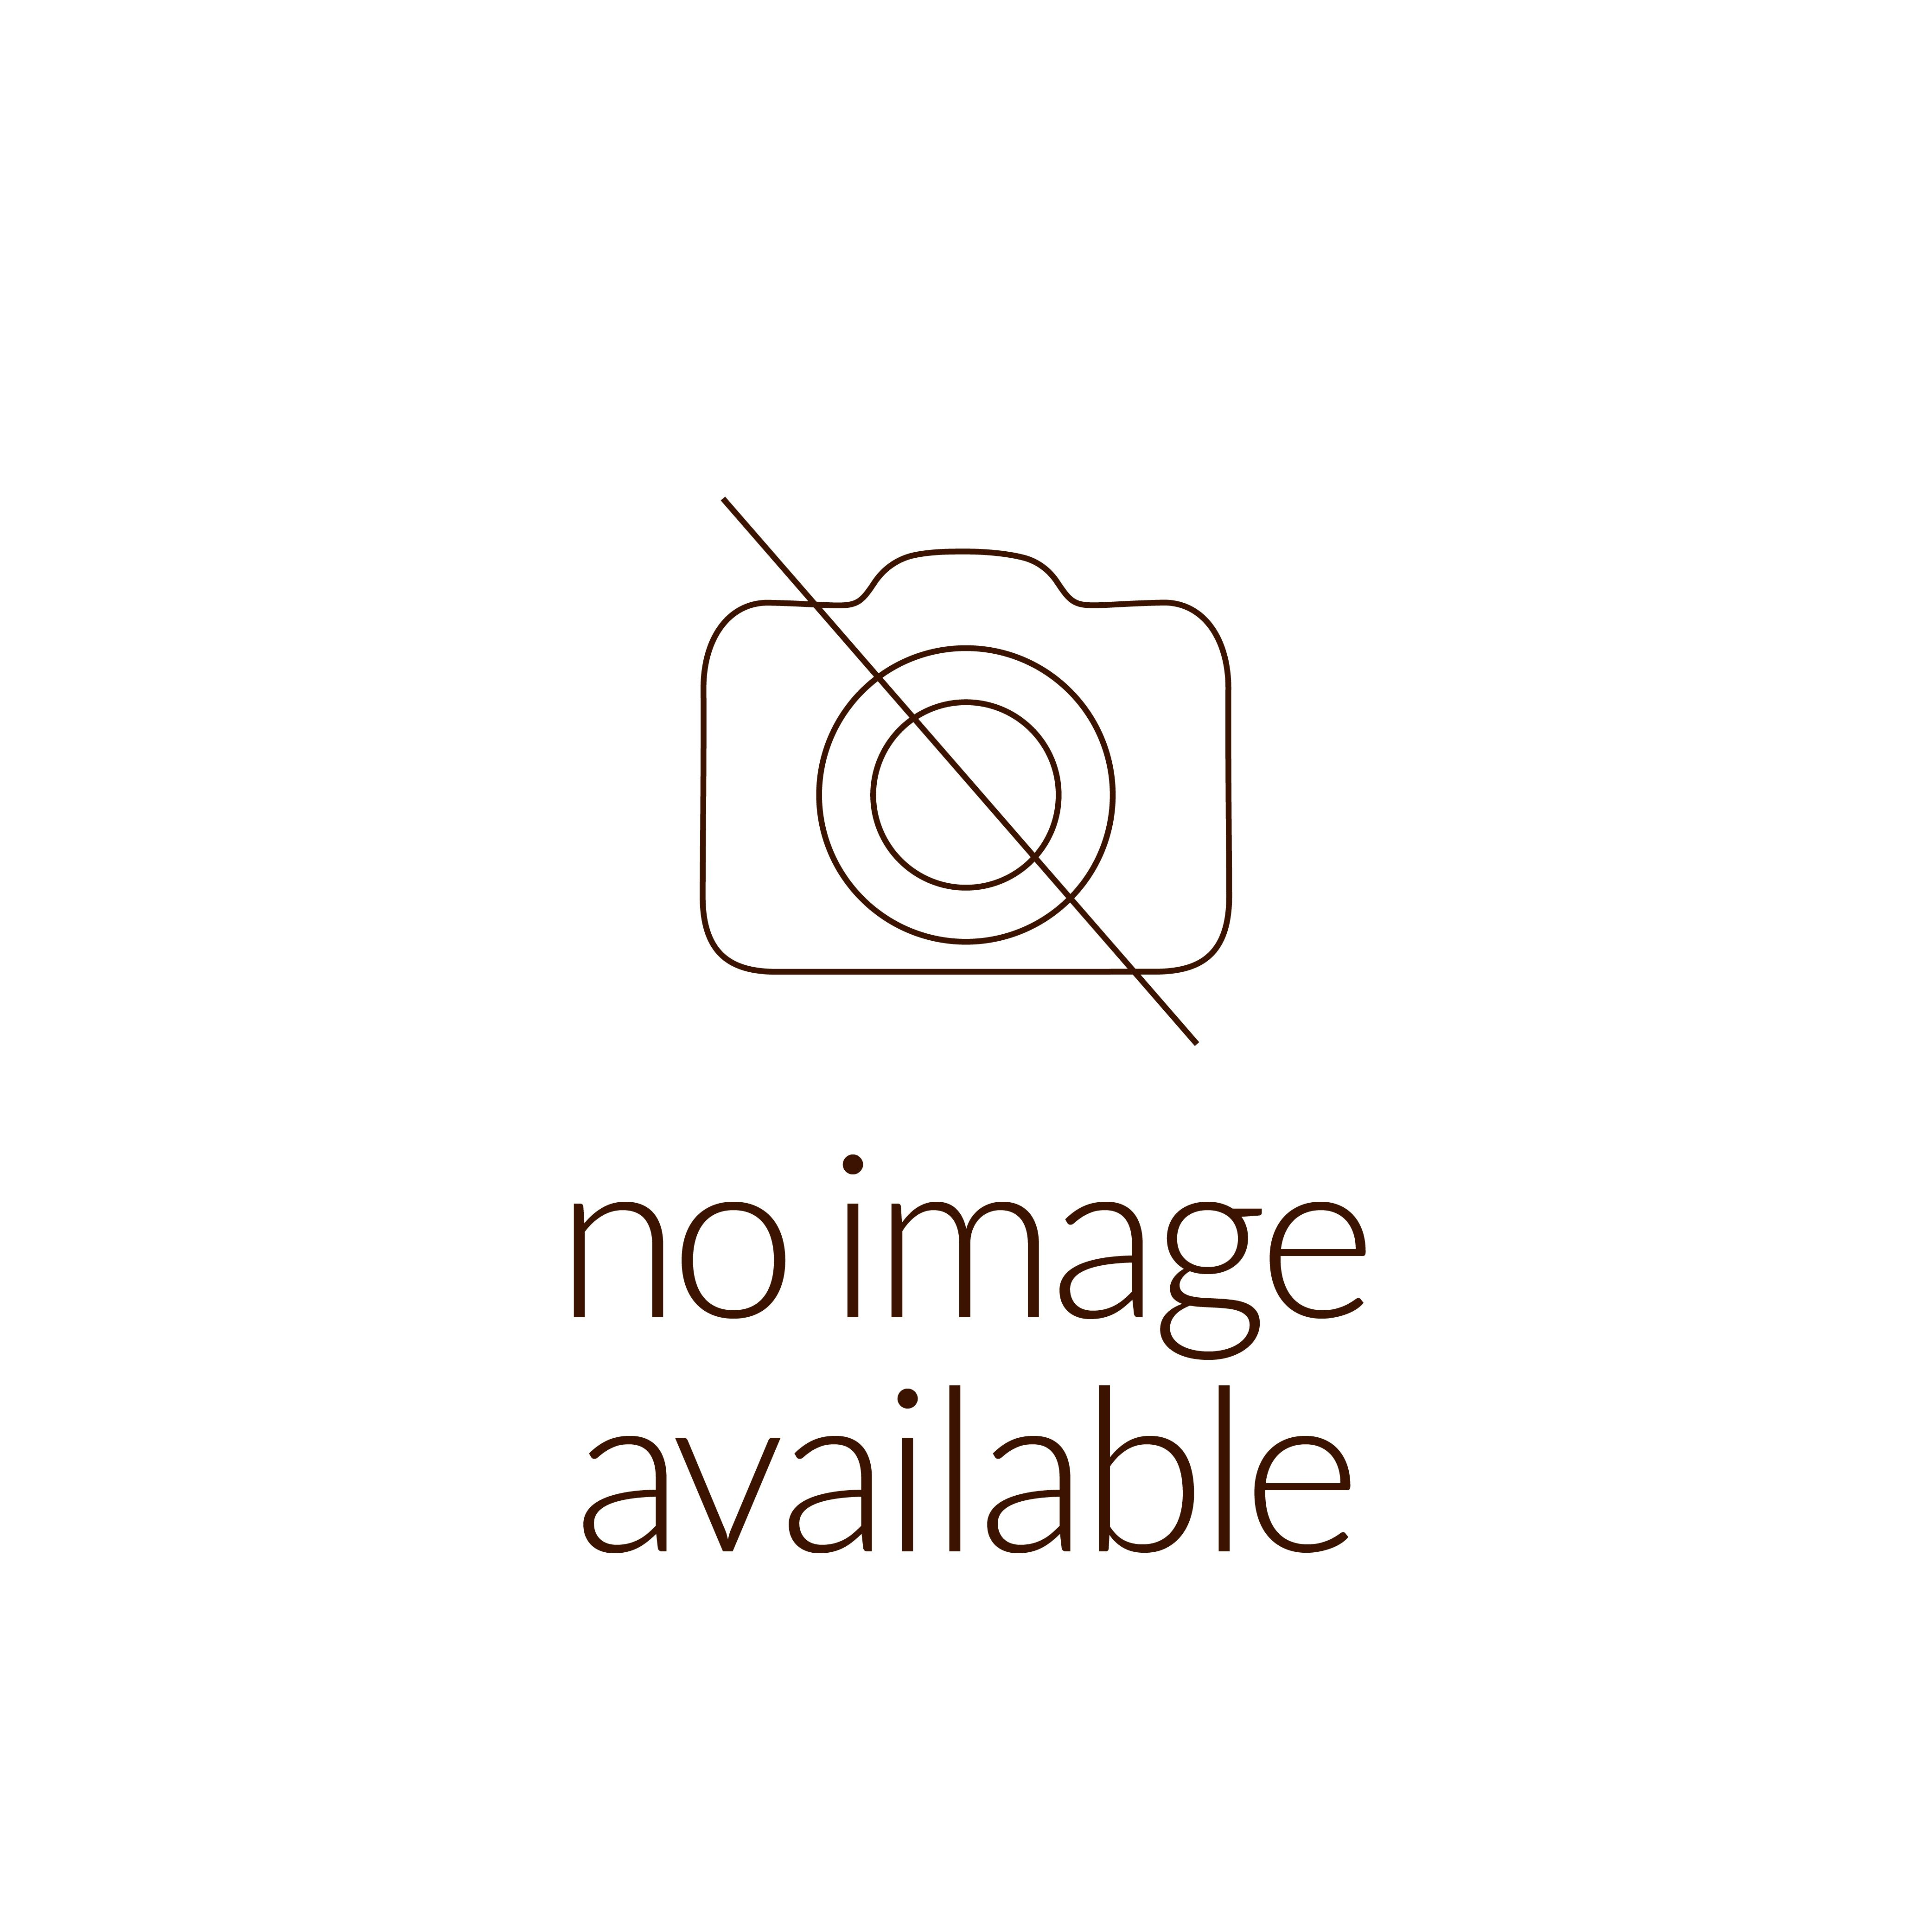 Jerusalem Reunited 40th Anniversary - 50.0 mm, 62 g, Silver/999 Medal